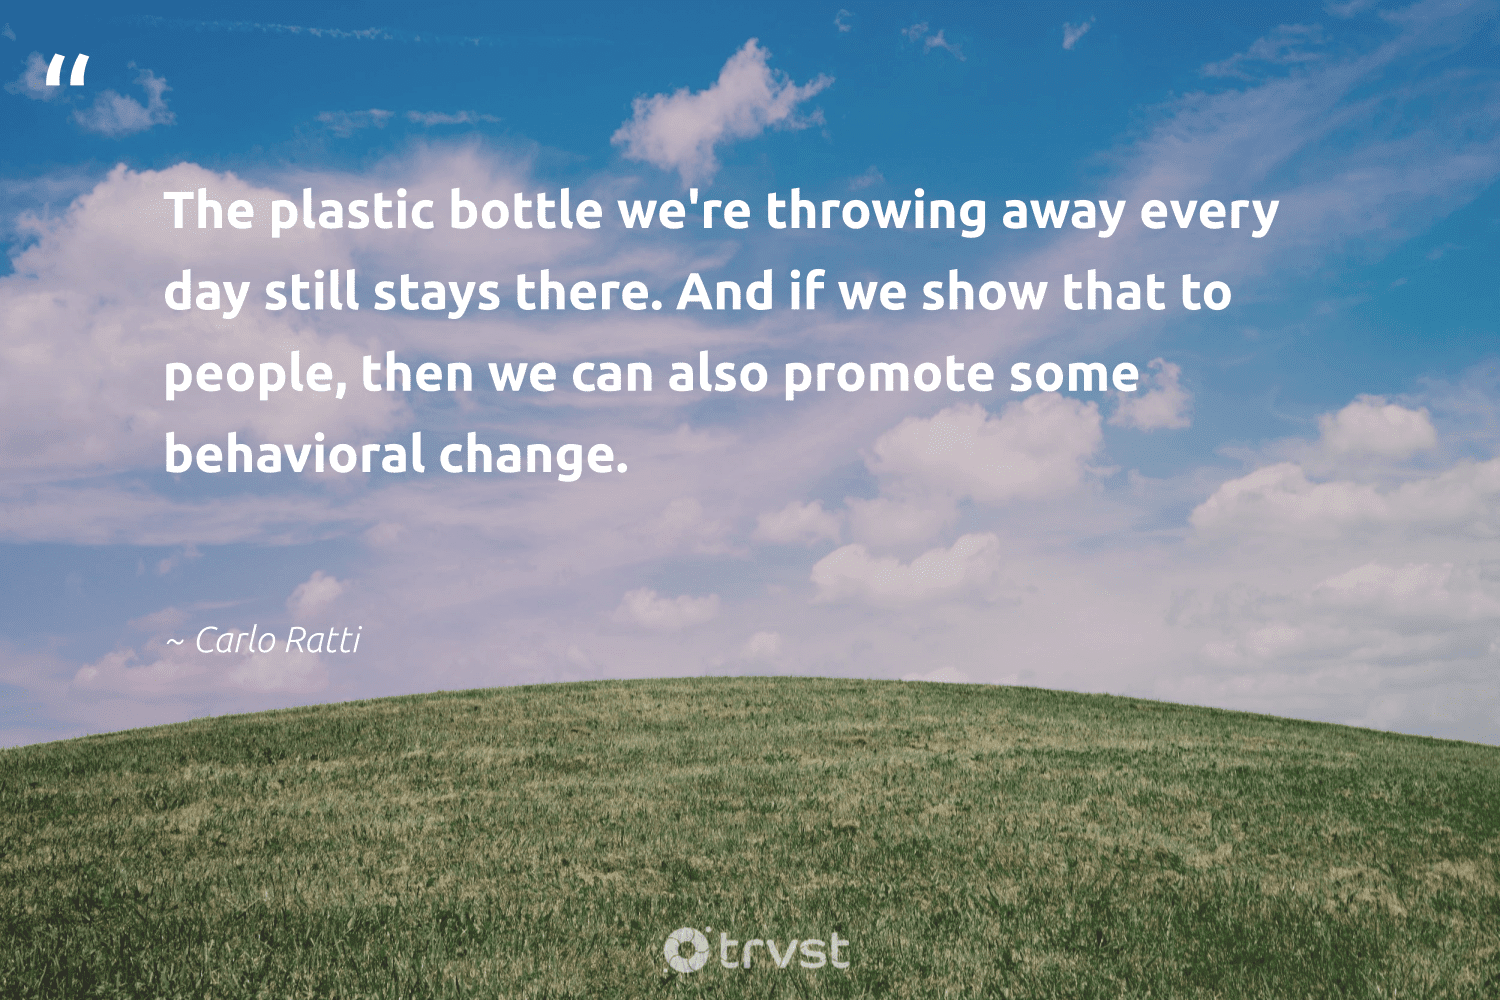 """""""The plastic bottle we're throwing away every day still stays there. And if we show that to people, then we can also promote some behavioral change.""""  - Carlo Ratti #trvst #quotes #plasticwaste #plastic #beatplasticpollution #dosomething #ecoconscious #gogreen #microplastics #savetheplanet #earthdayeveryday #thinkgreen"""